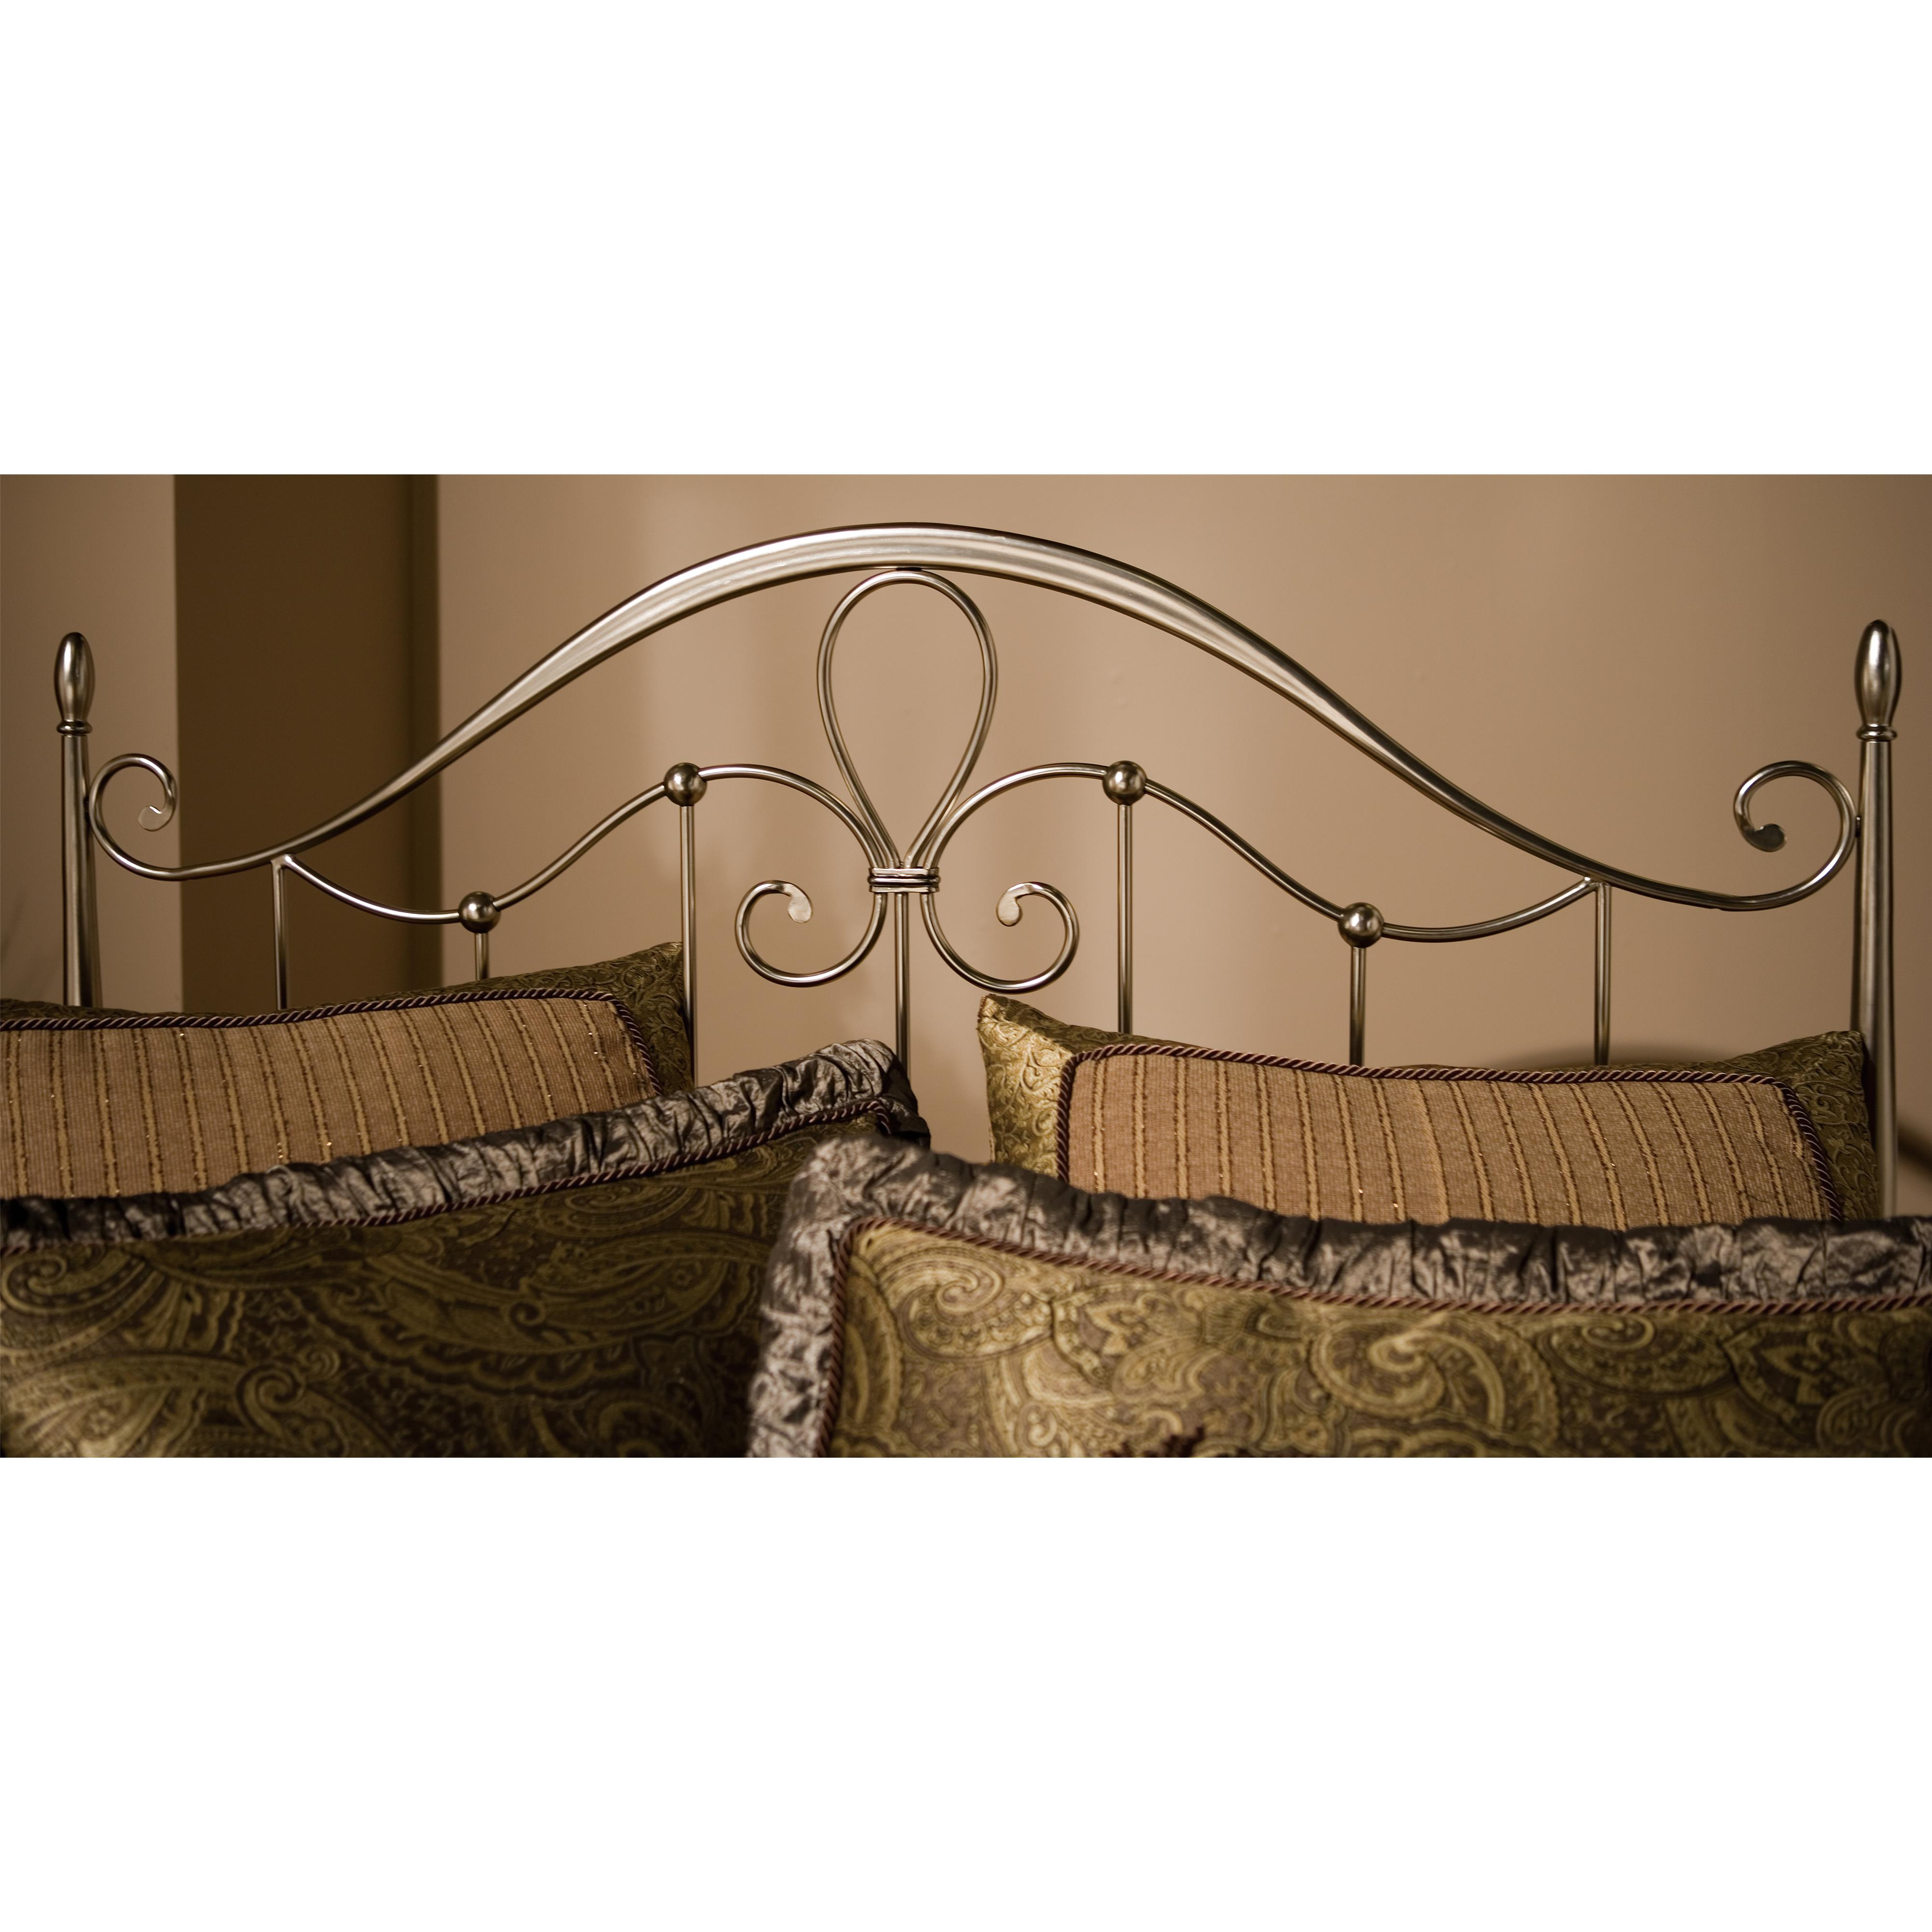 Hillsdale Metal Beds Doheny King Headboard - Item Number: 1383-670